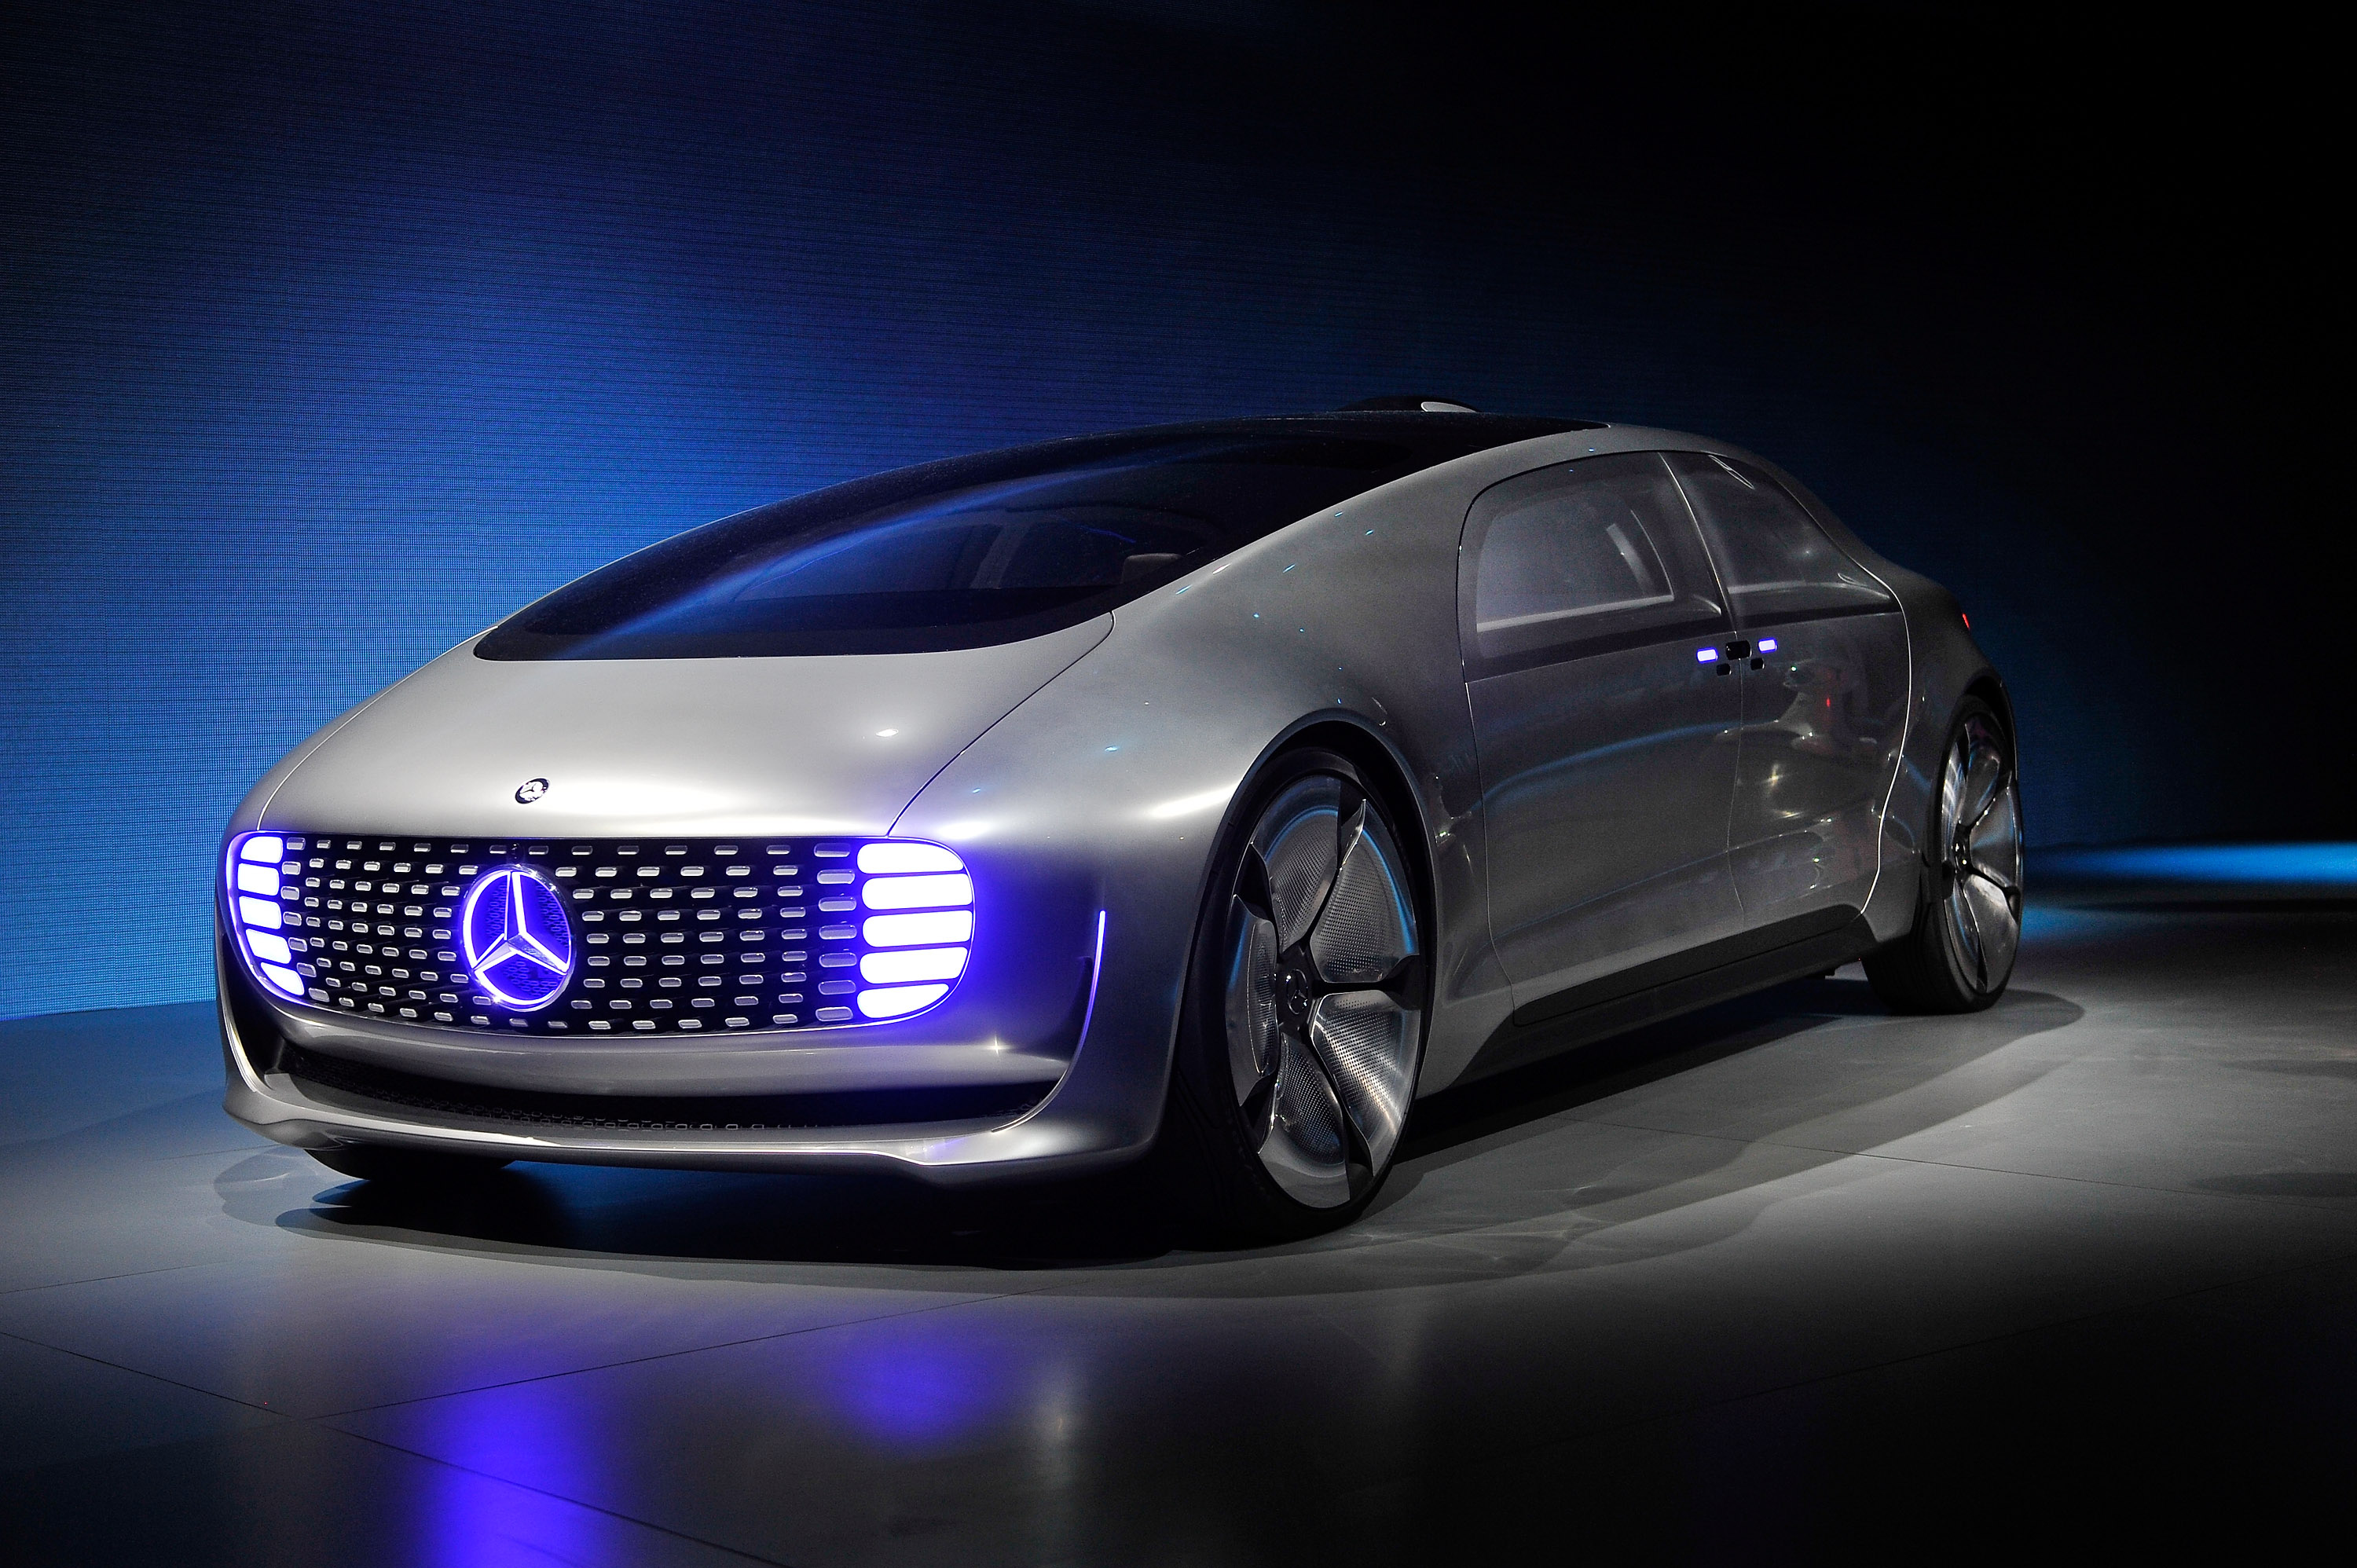 A Mercedes-Benz F 015 autonomous driving automobile is displayed at the Mercedes-Benz press event at the 2015 International CES on Jan. 5, 2015 in Las Vegas.